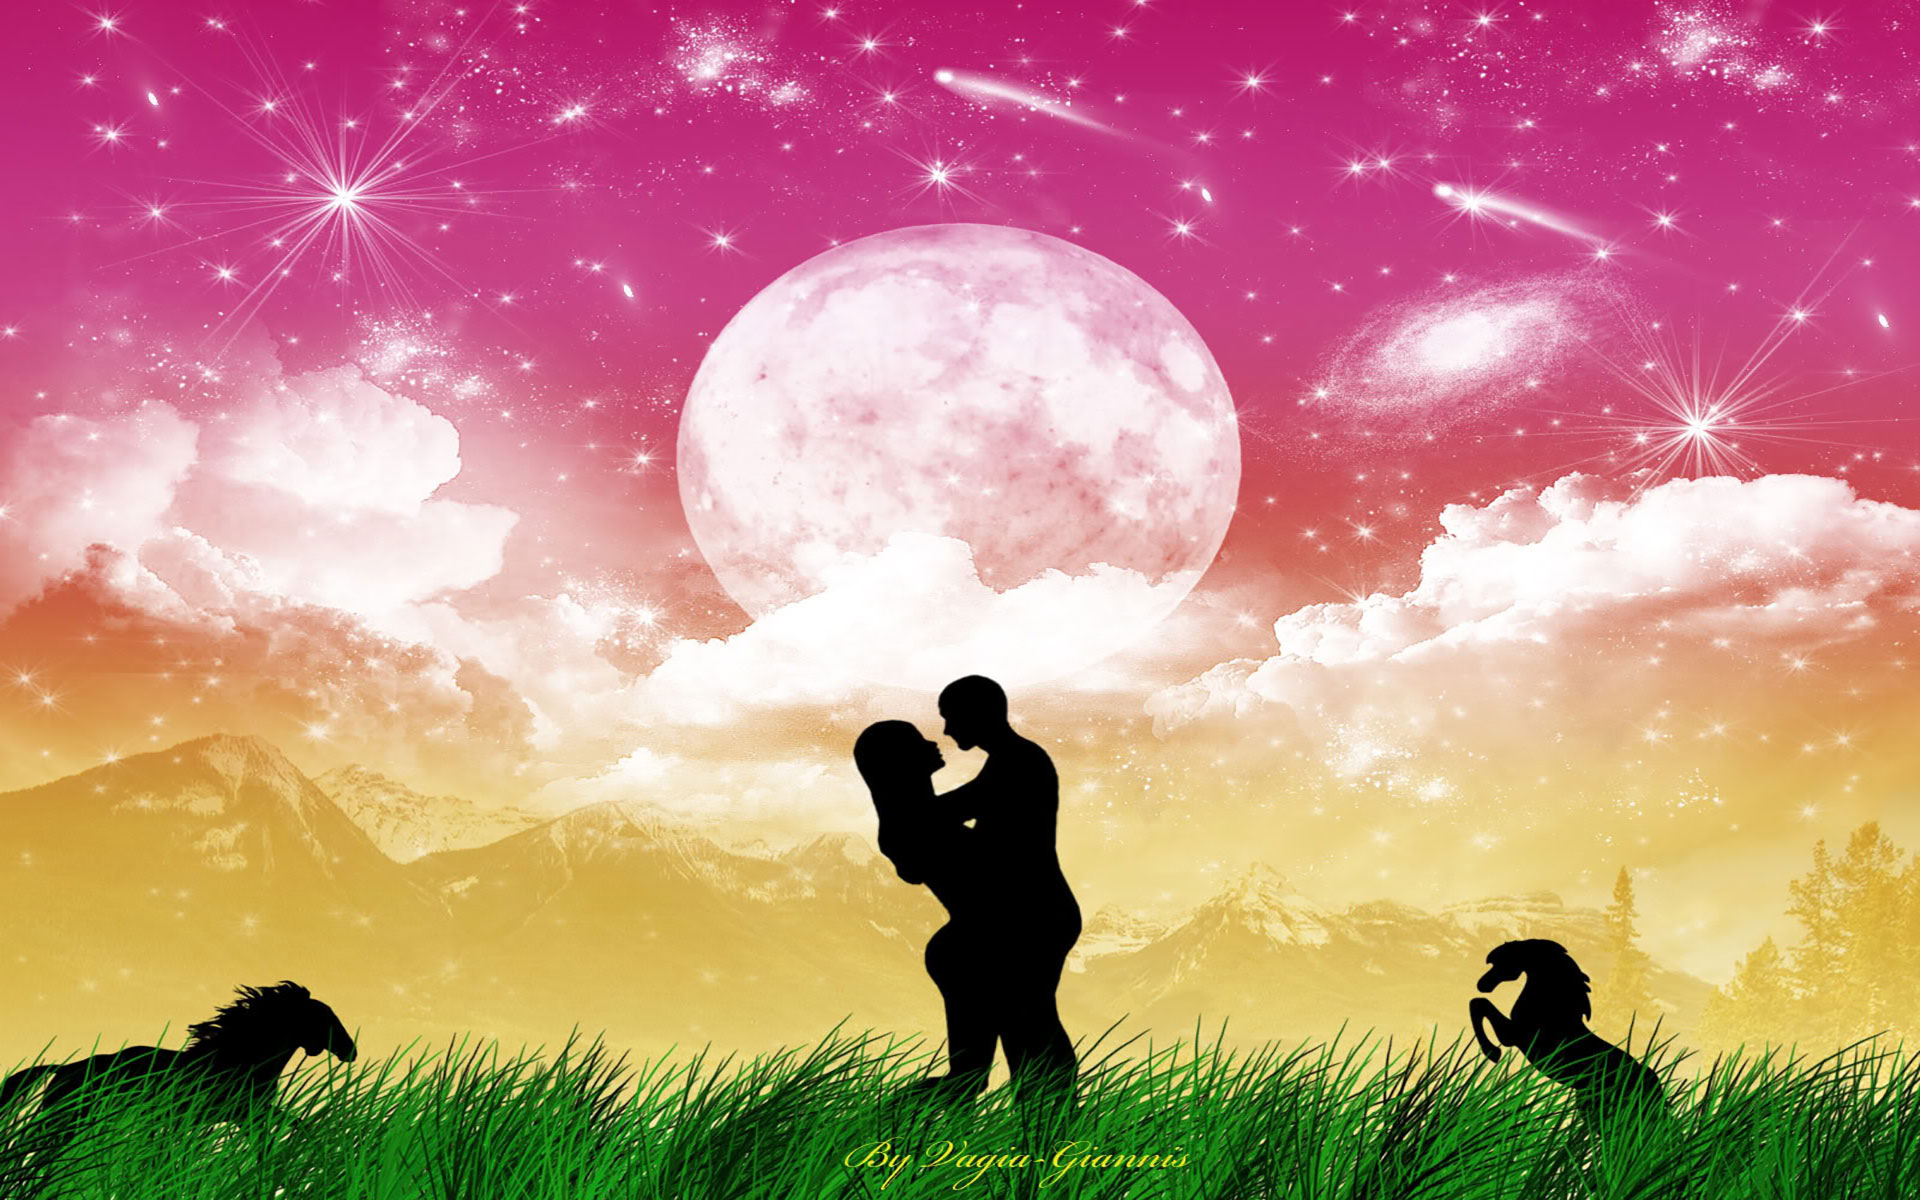 Cute Couples Holding Hands Hd Wallpapers Silhouette Of Couple Holding Hands Dancing Couple Silhouette